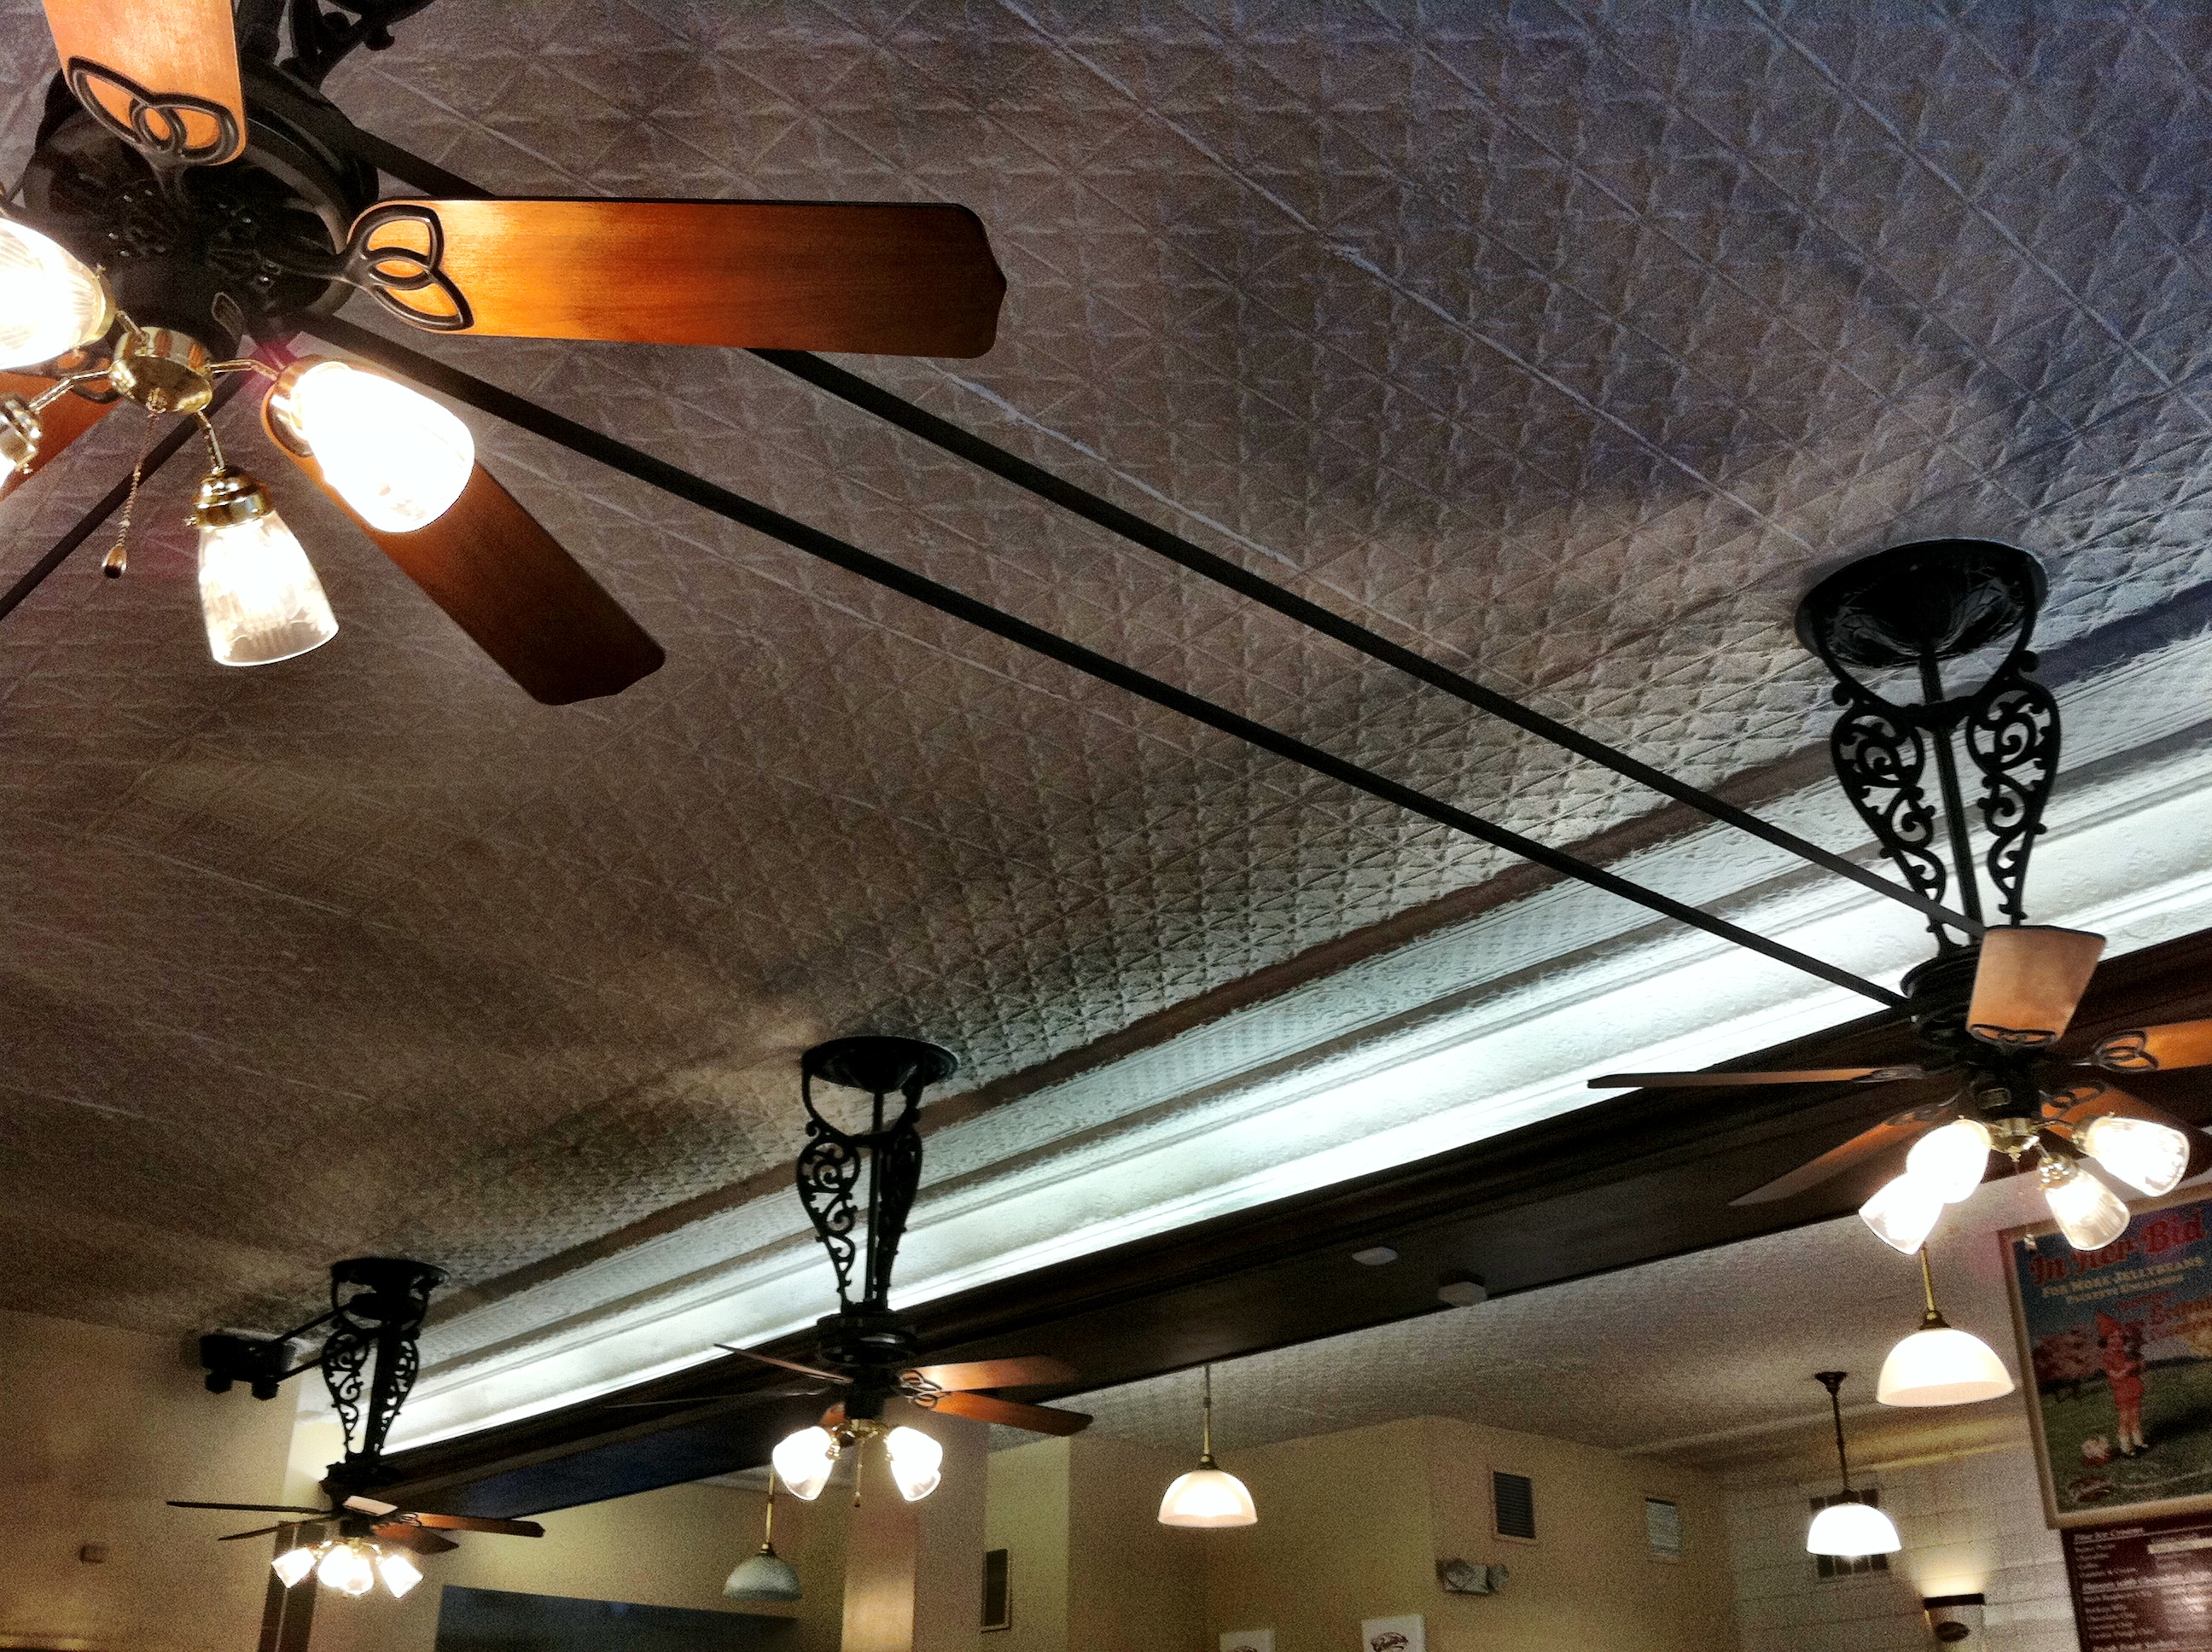 Belt Driven Ceiling Fans Belt Drive Ceiling Fans Explore Super Structure 39s Photos